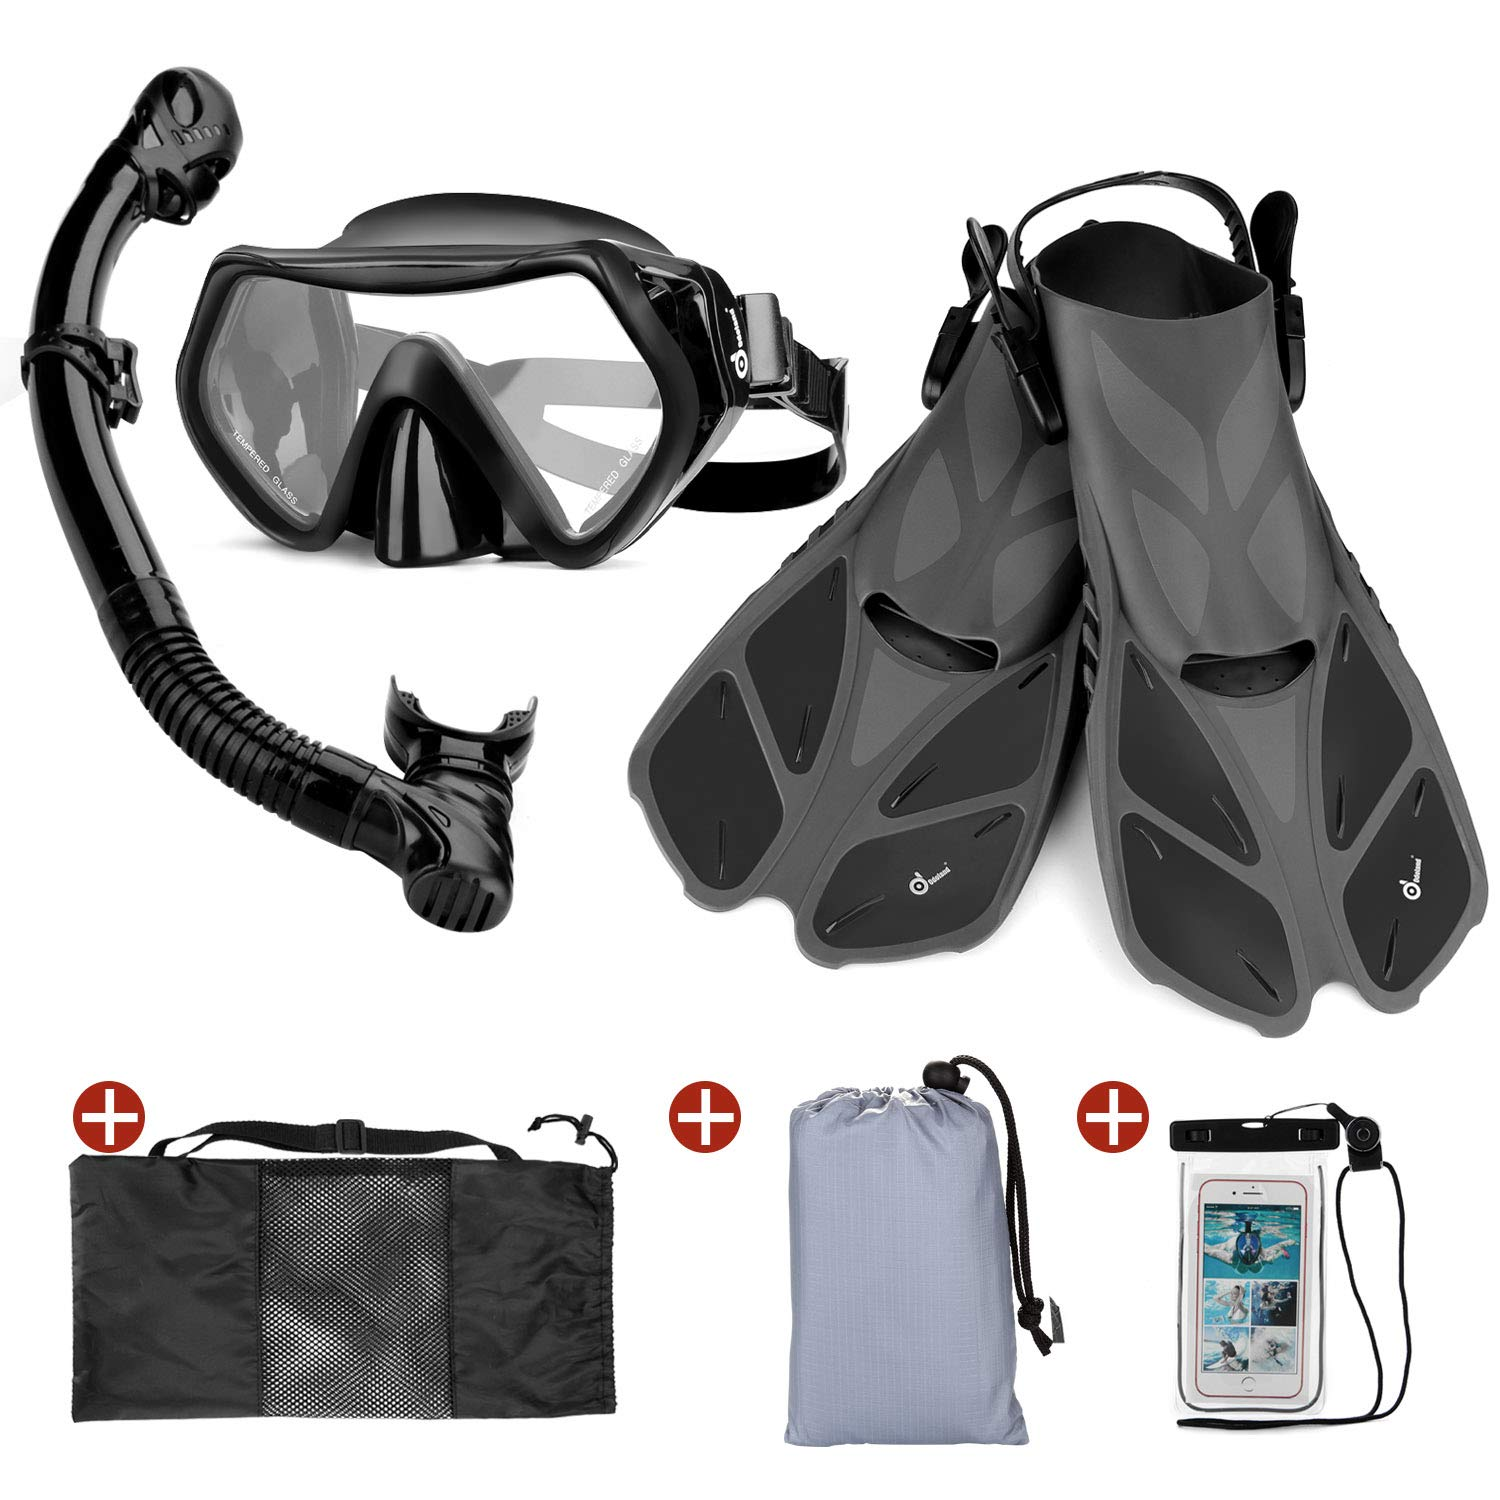 Odoland Snorkel Set 6-in-1 Snorkeling Packages, Diving Mask with Splash Guard Snorkel and Adjustable Swim Fins and Lightweight Mesh Bag and Waterproof Case and Beach Blanket by Odoland